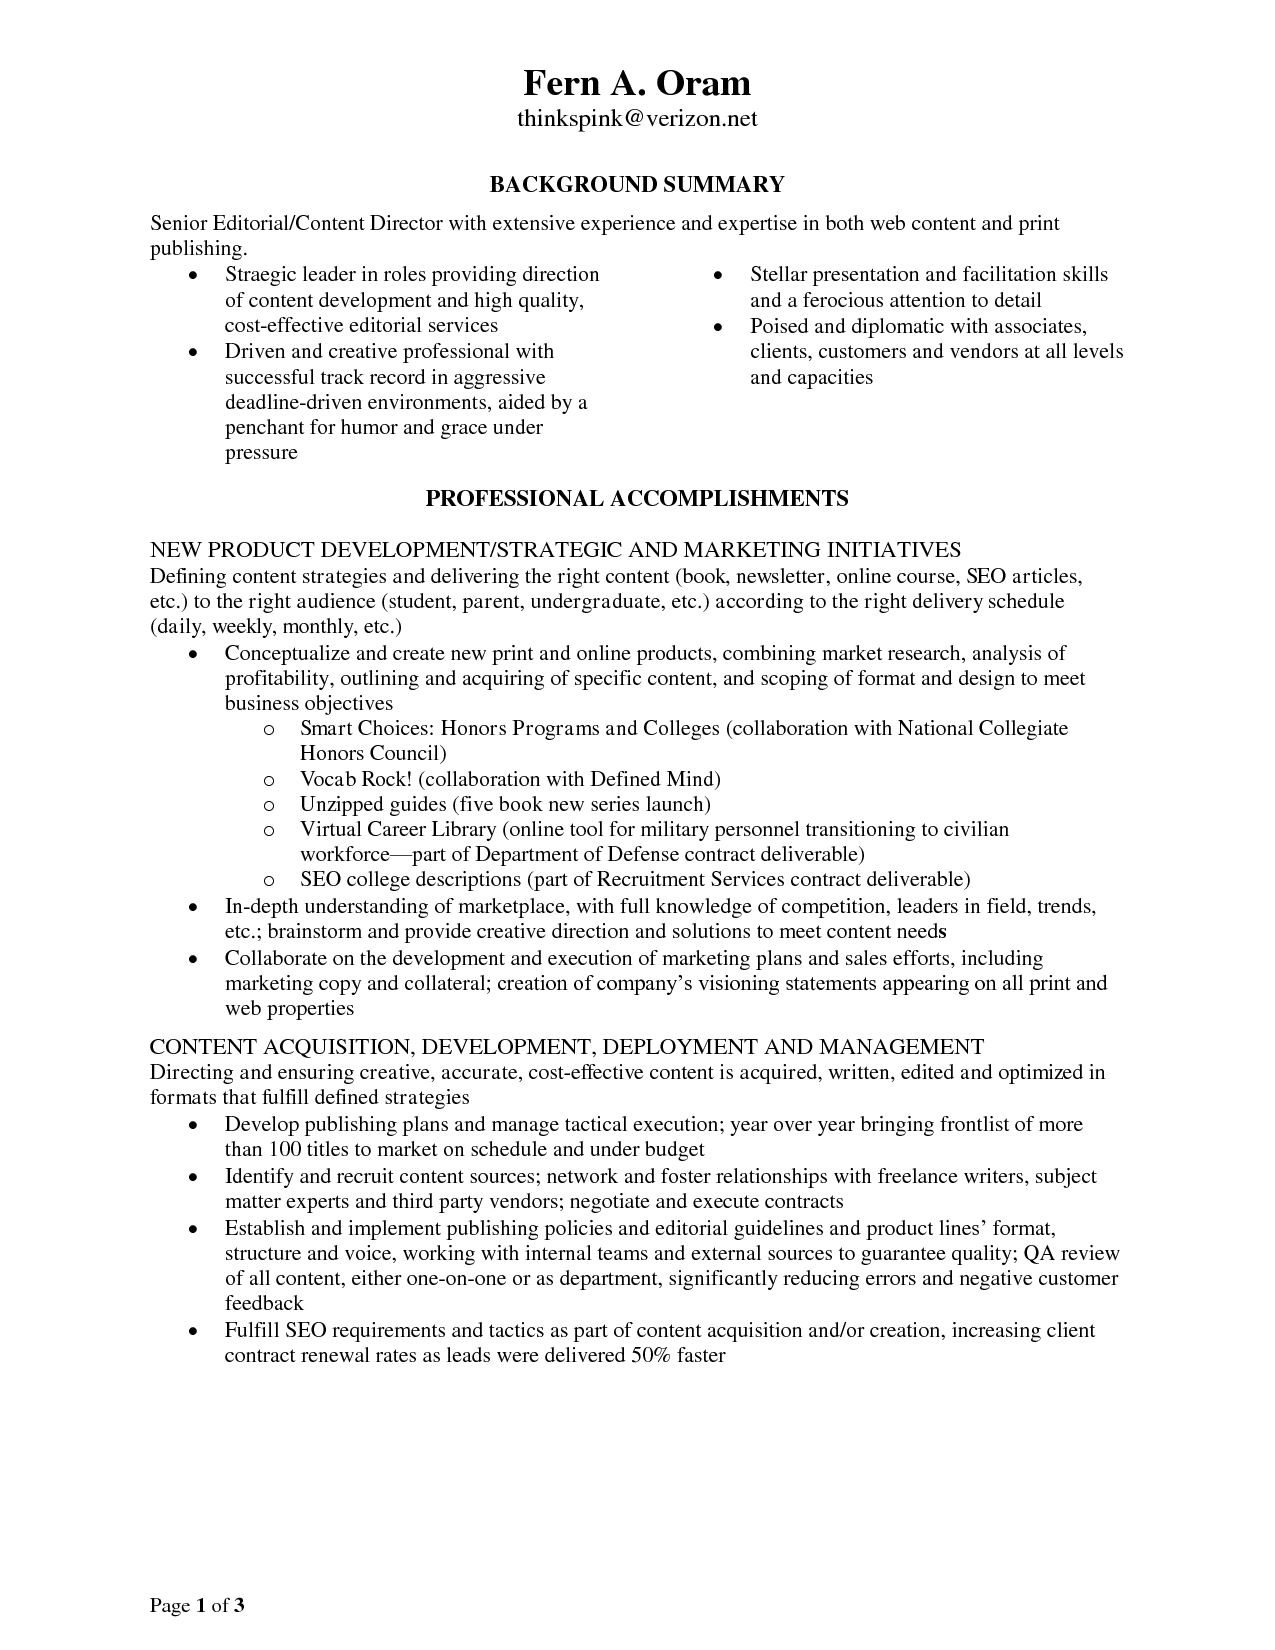 Resume Templates Free Monster Resume Templates Free Monster Resume Templates Free